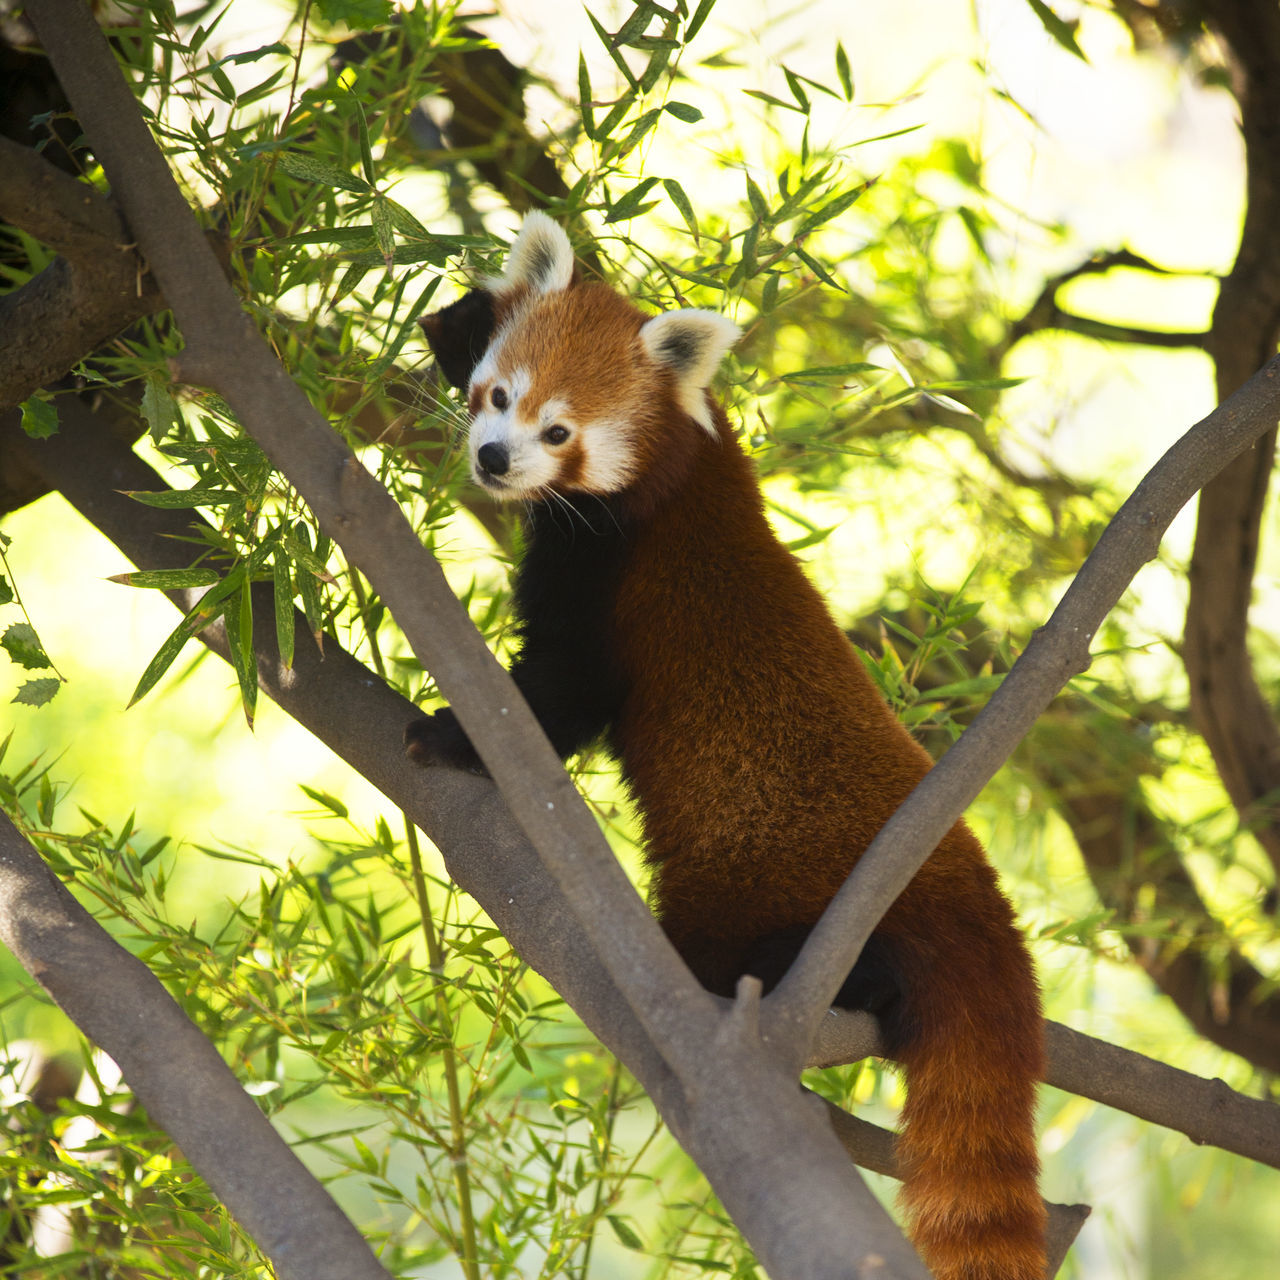 Animals In The Wild Day Nature Nature Photography No People One Animal Red Panda Tree